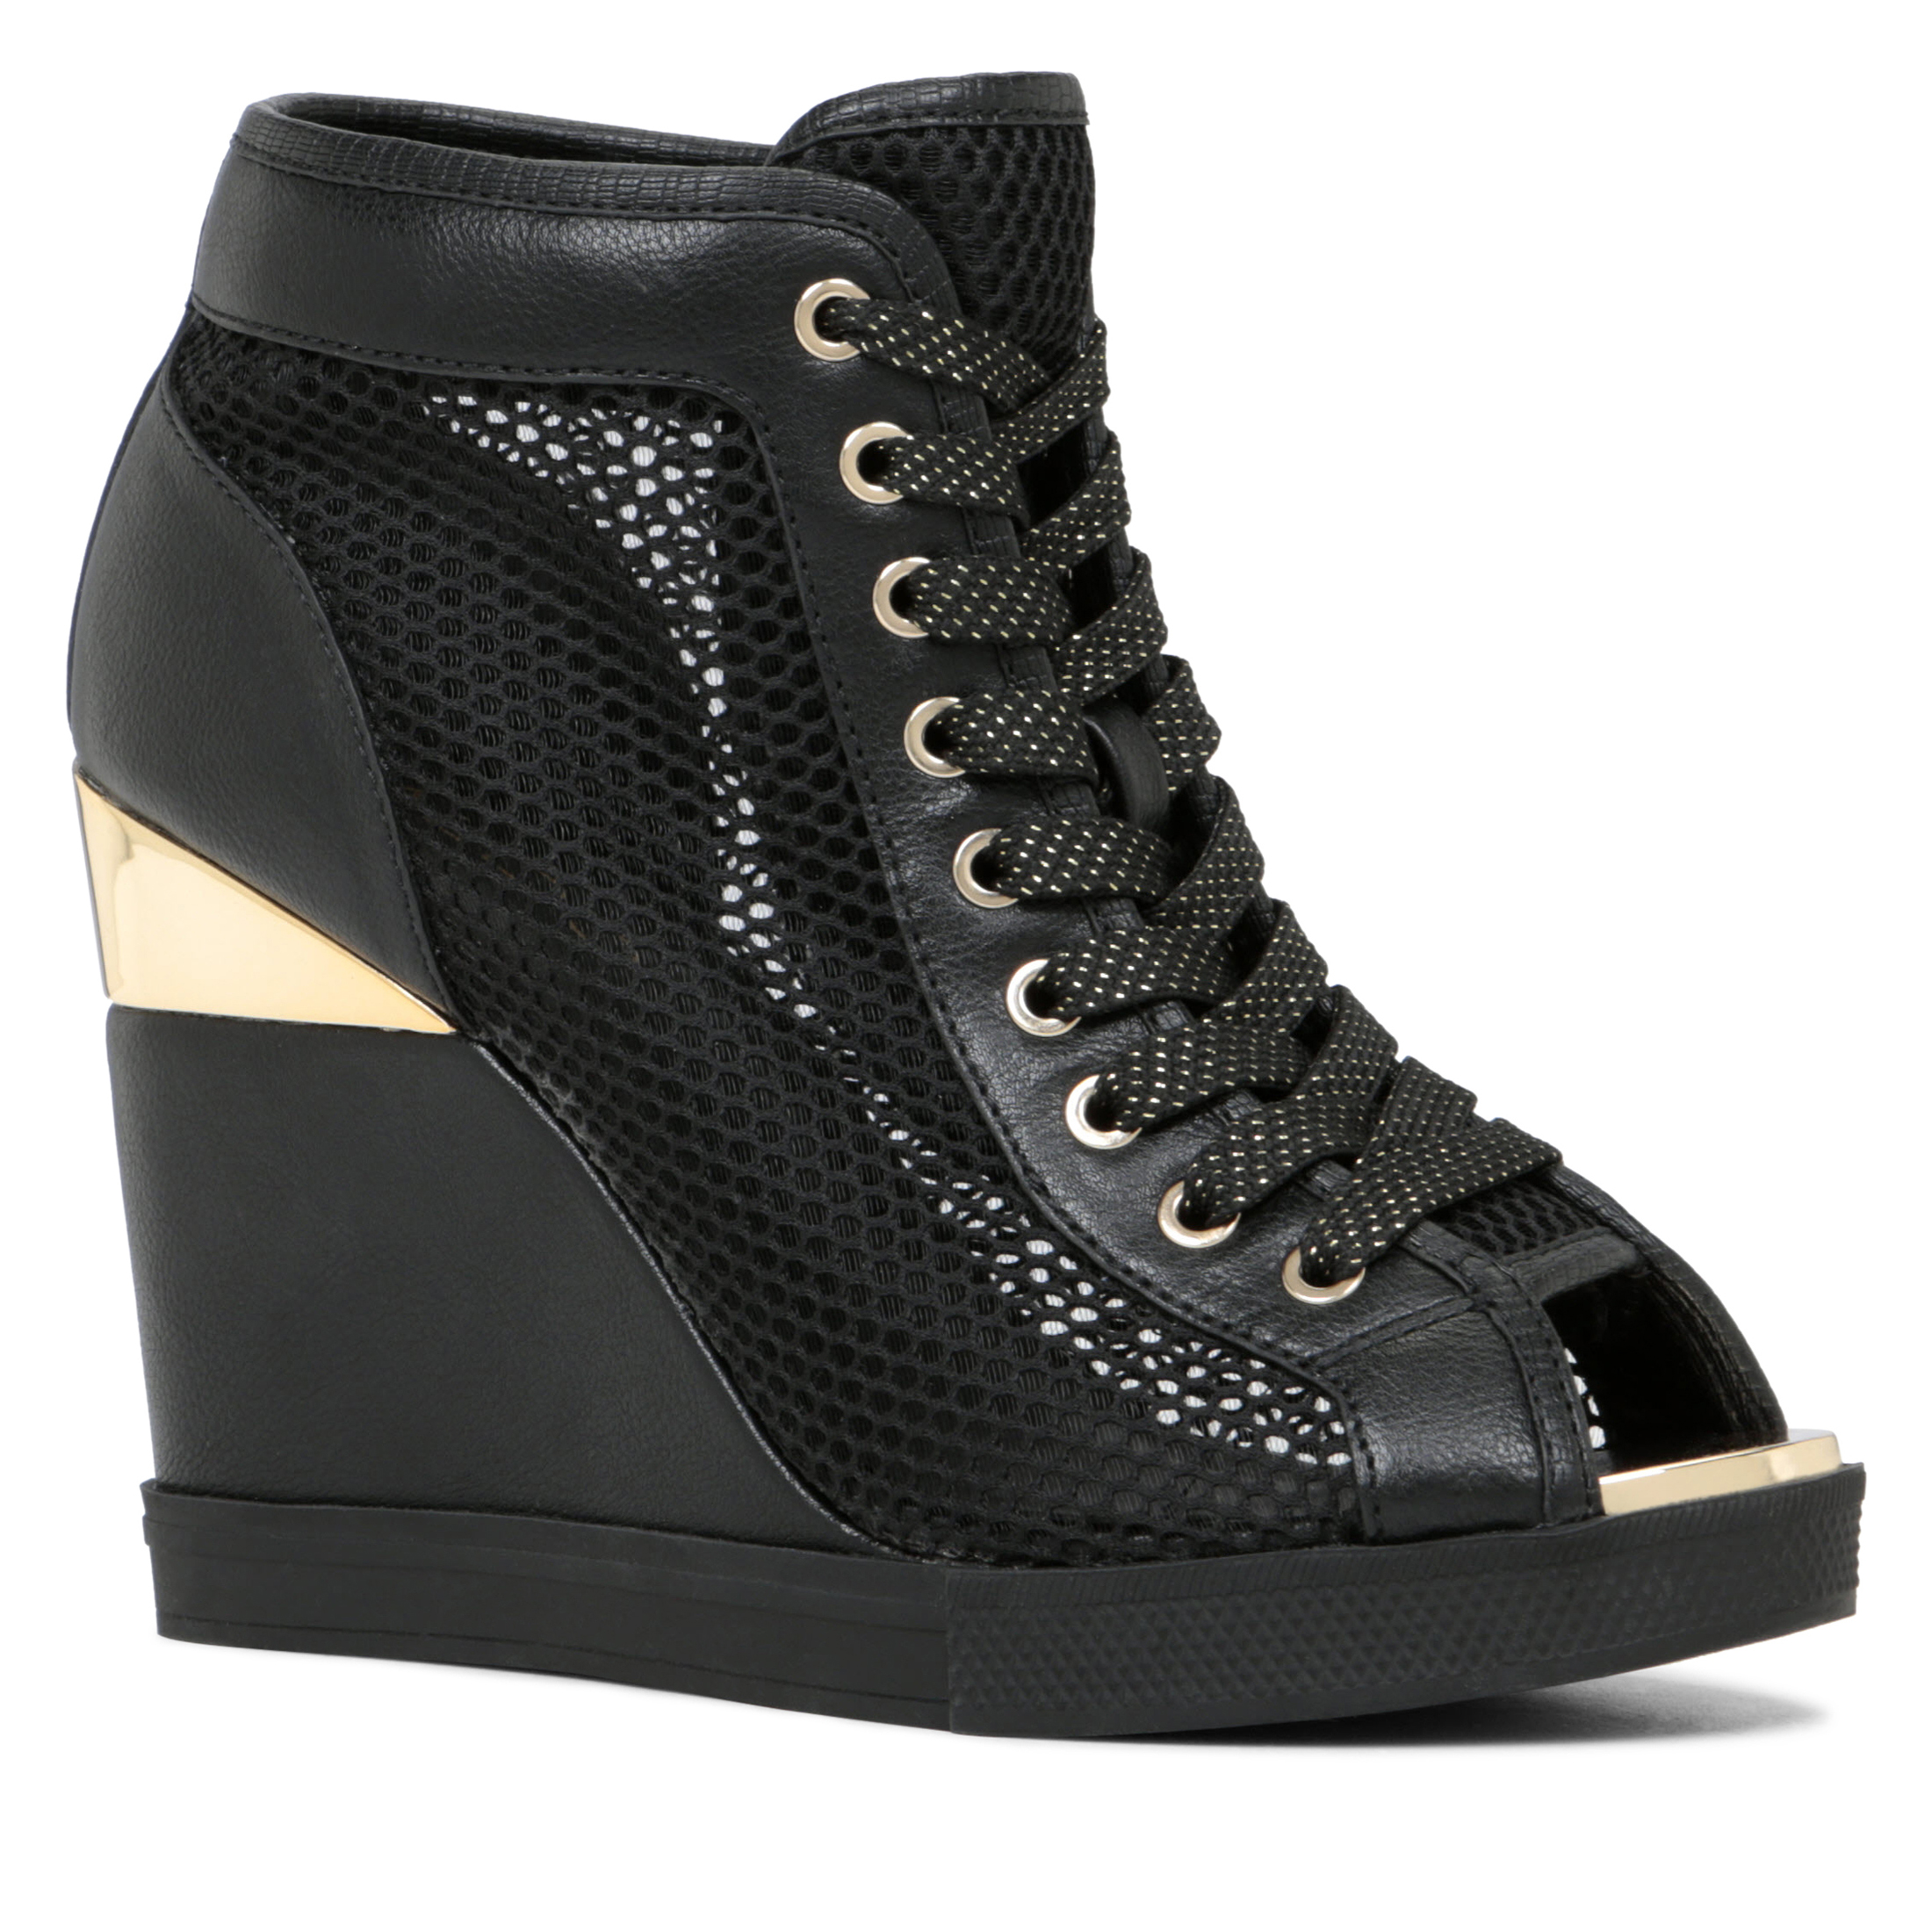 of sepatuolahragaa here most comforter fresh what shoes women heres comfortable black for about images dress womens flat saying s are people ideas